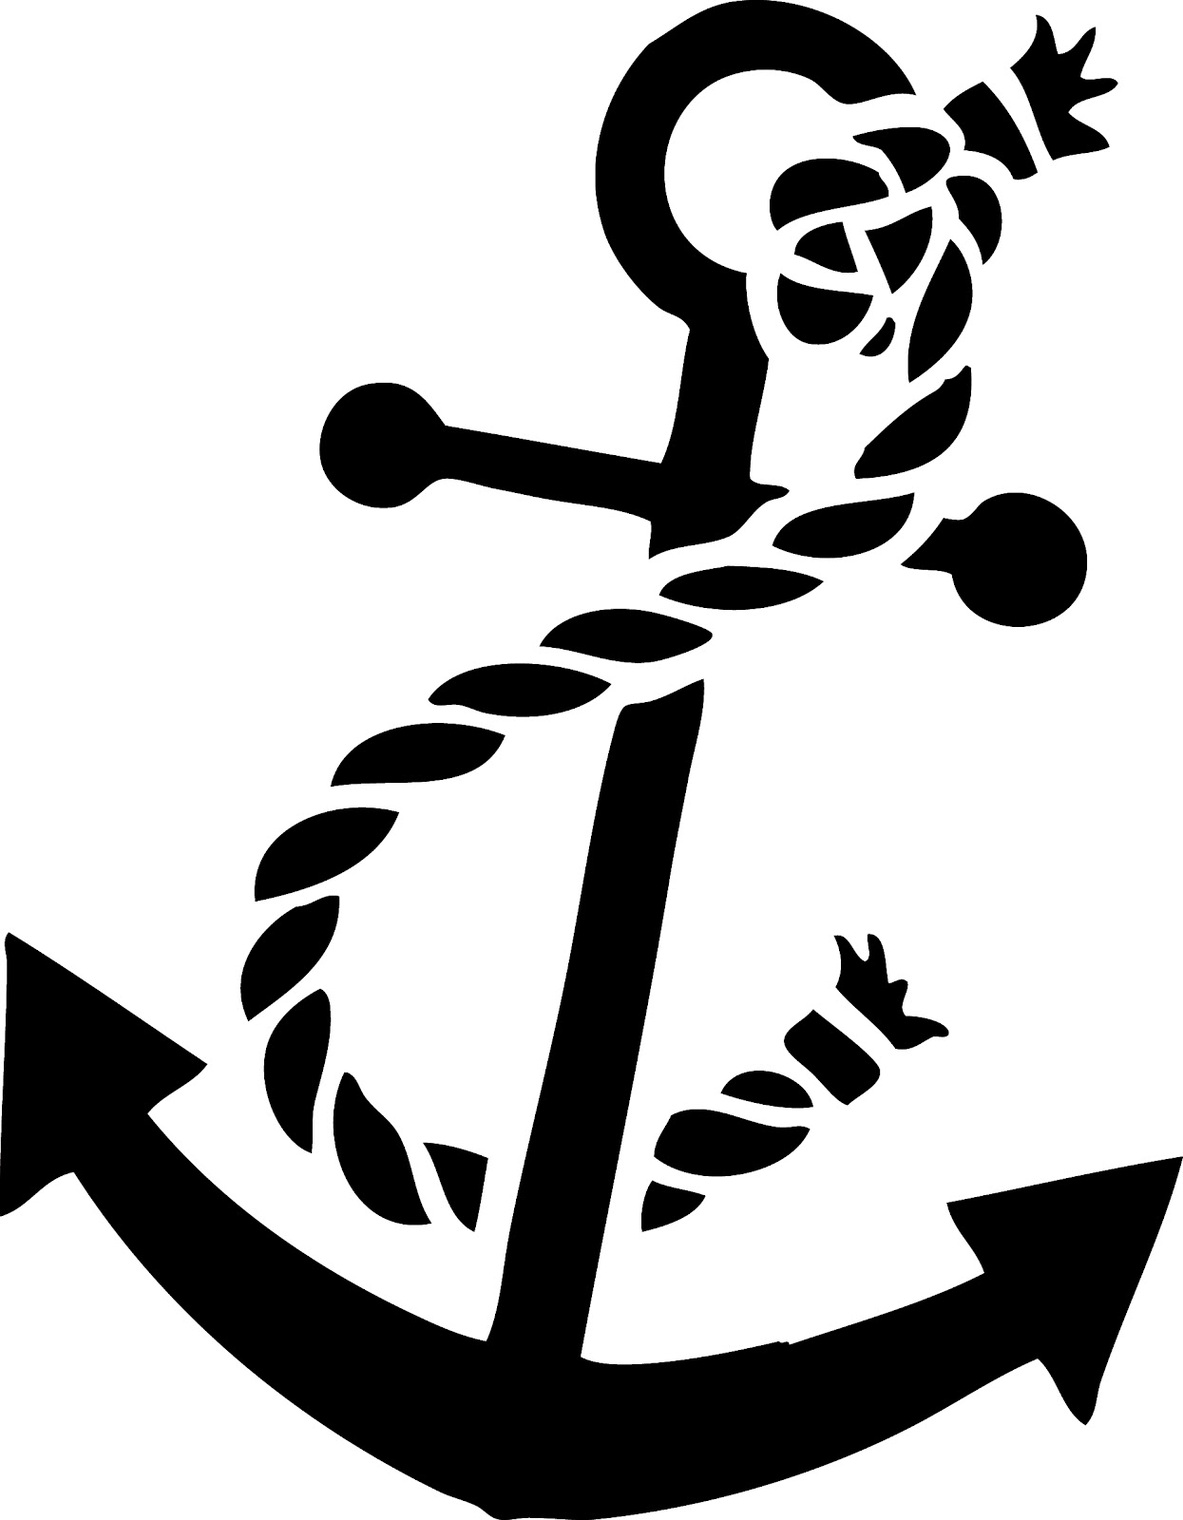 Anchor Image Vector Clip Art Online Royalty Free & Public Domain.